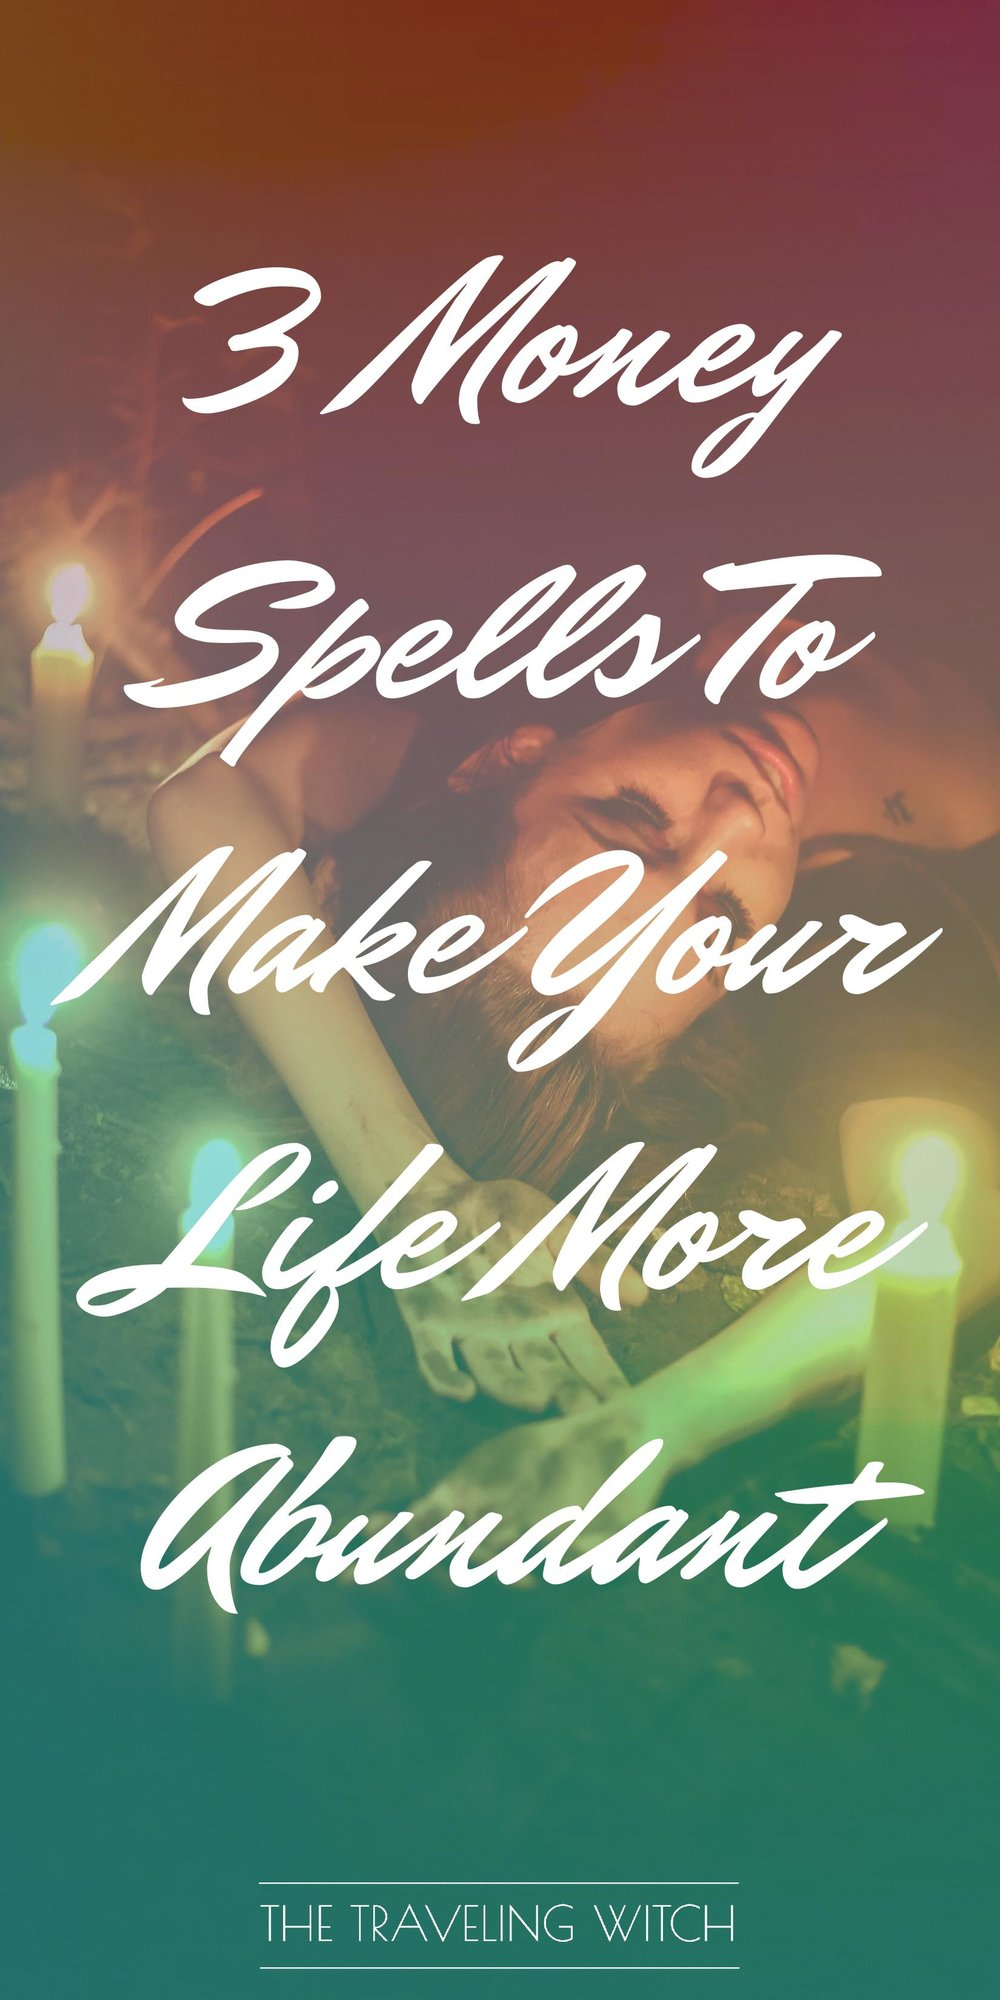 3 Money Spells To Make Your Life More Abundant // Witchcraft // Magic // The Traveling Witch